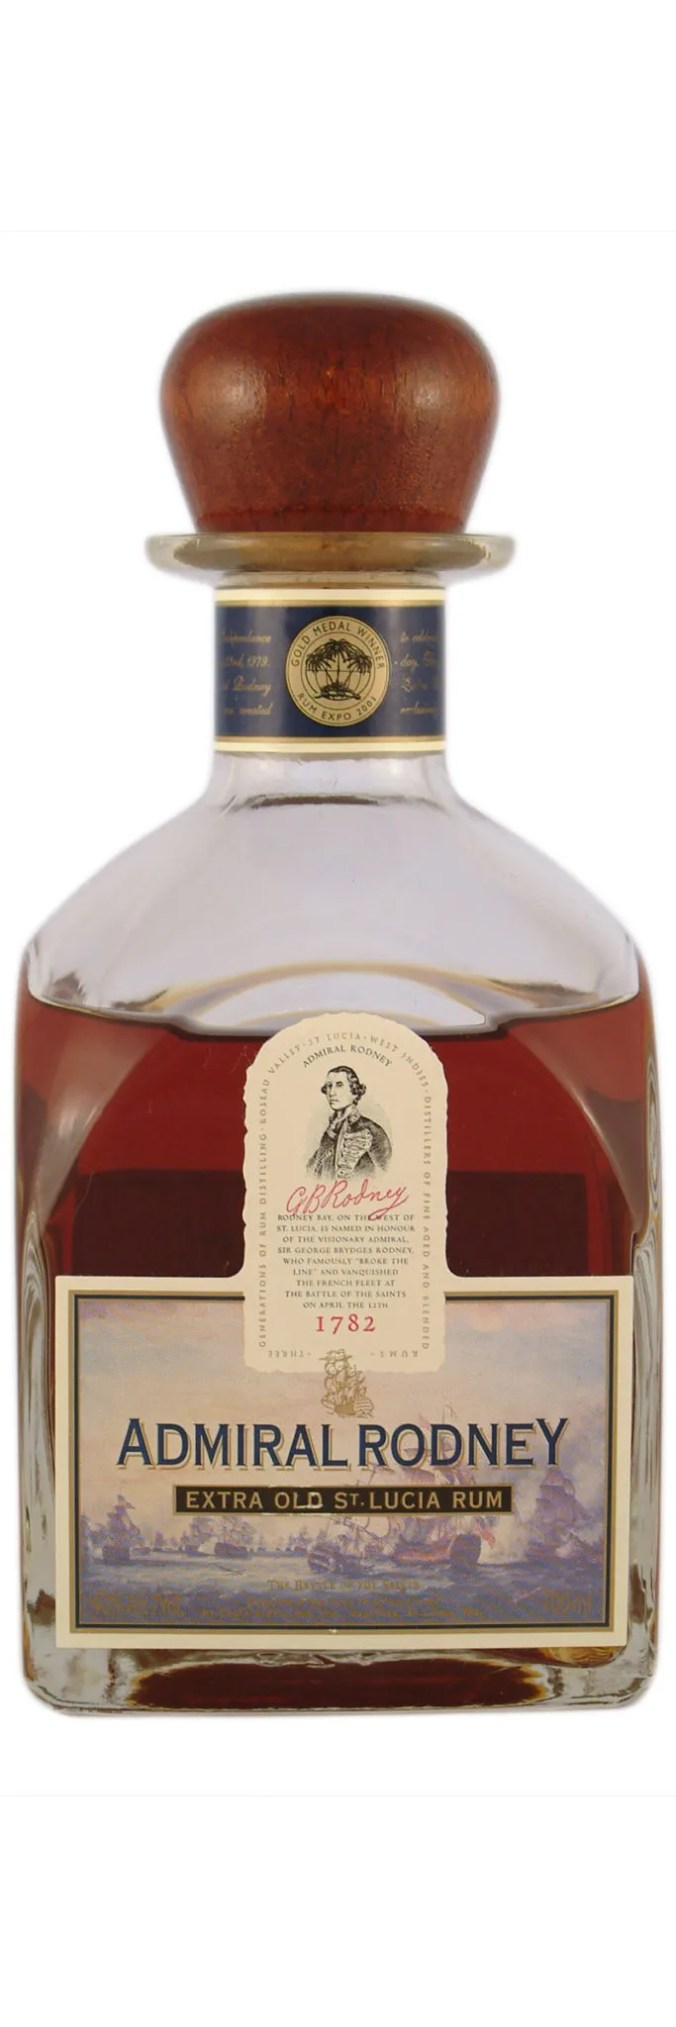 Admiral Rodney Extra Old rum from St. Lucia